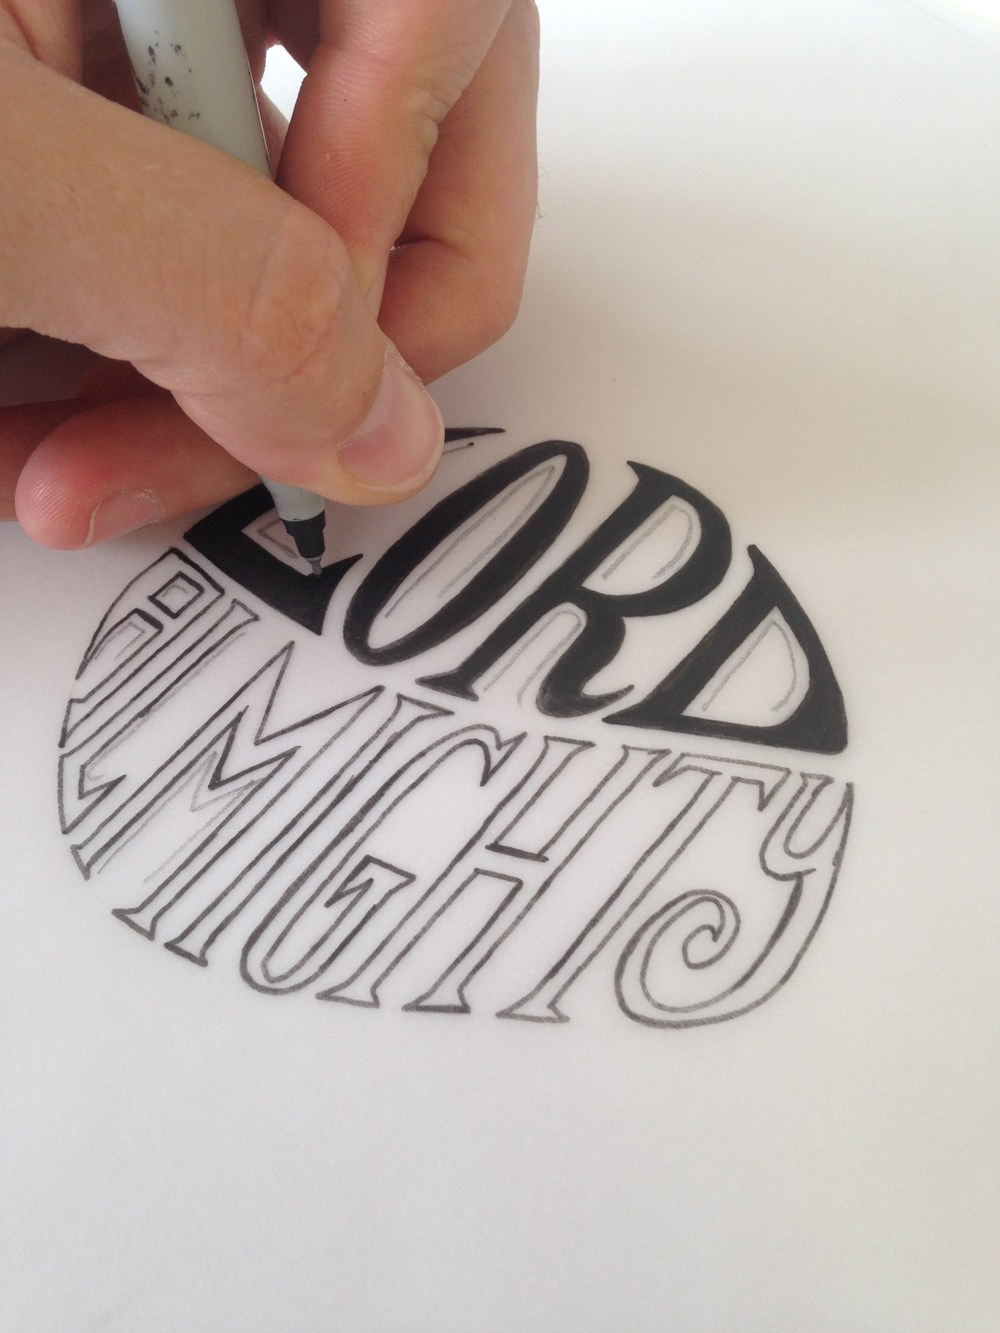 Lord Almighty logo sketch